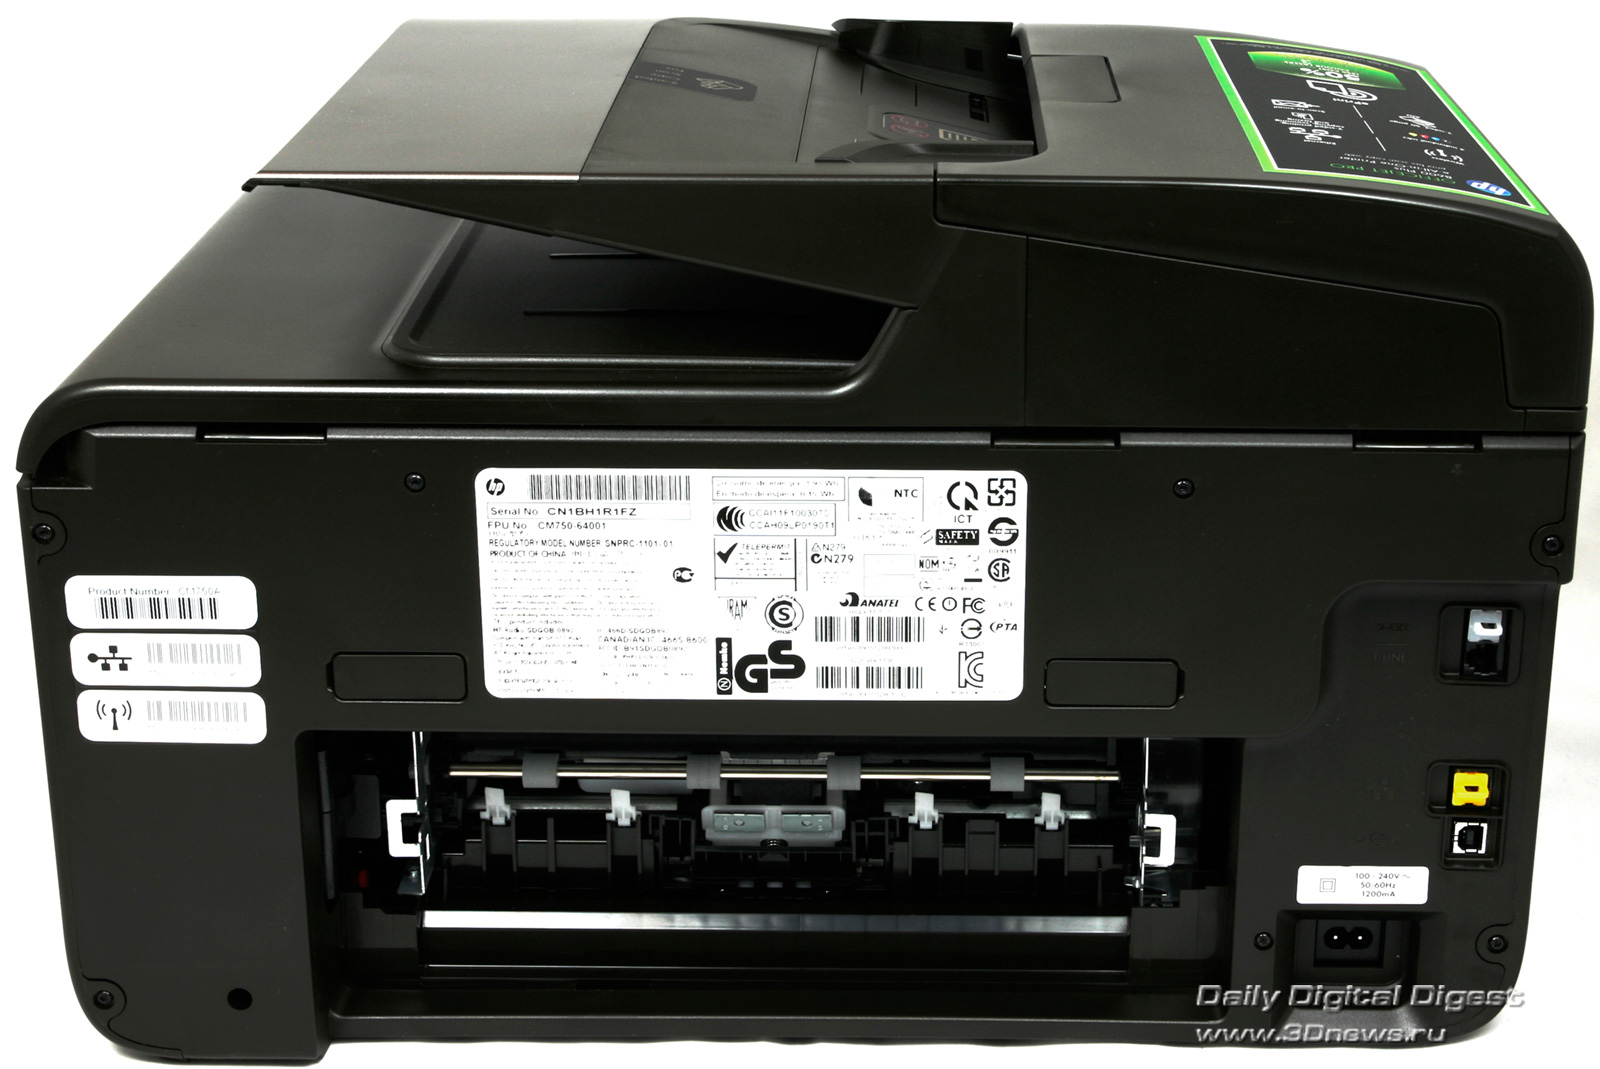 Hp officejet pro 8600 fax hook up